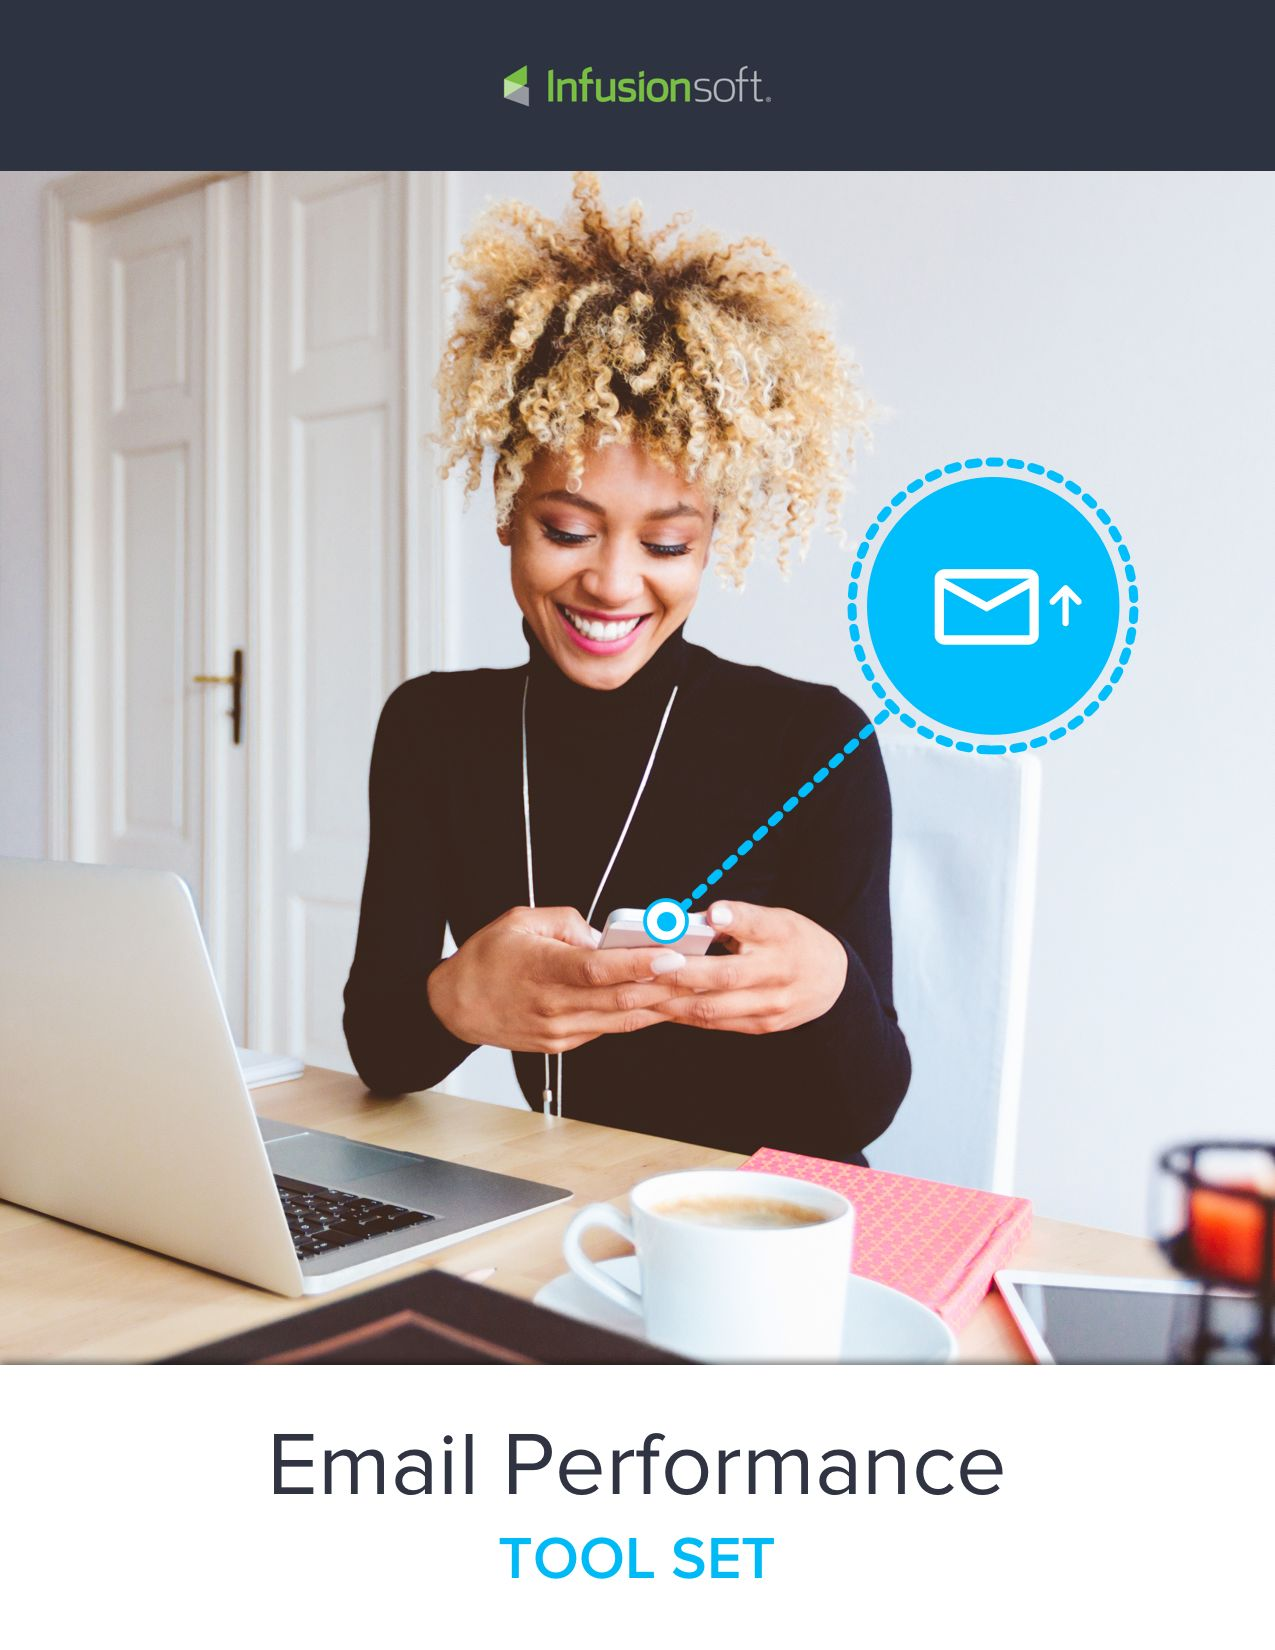 Email performance tool